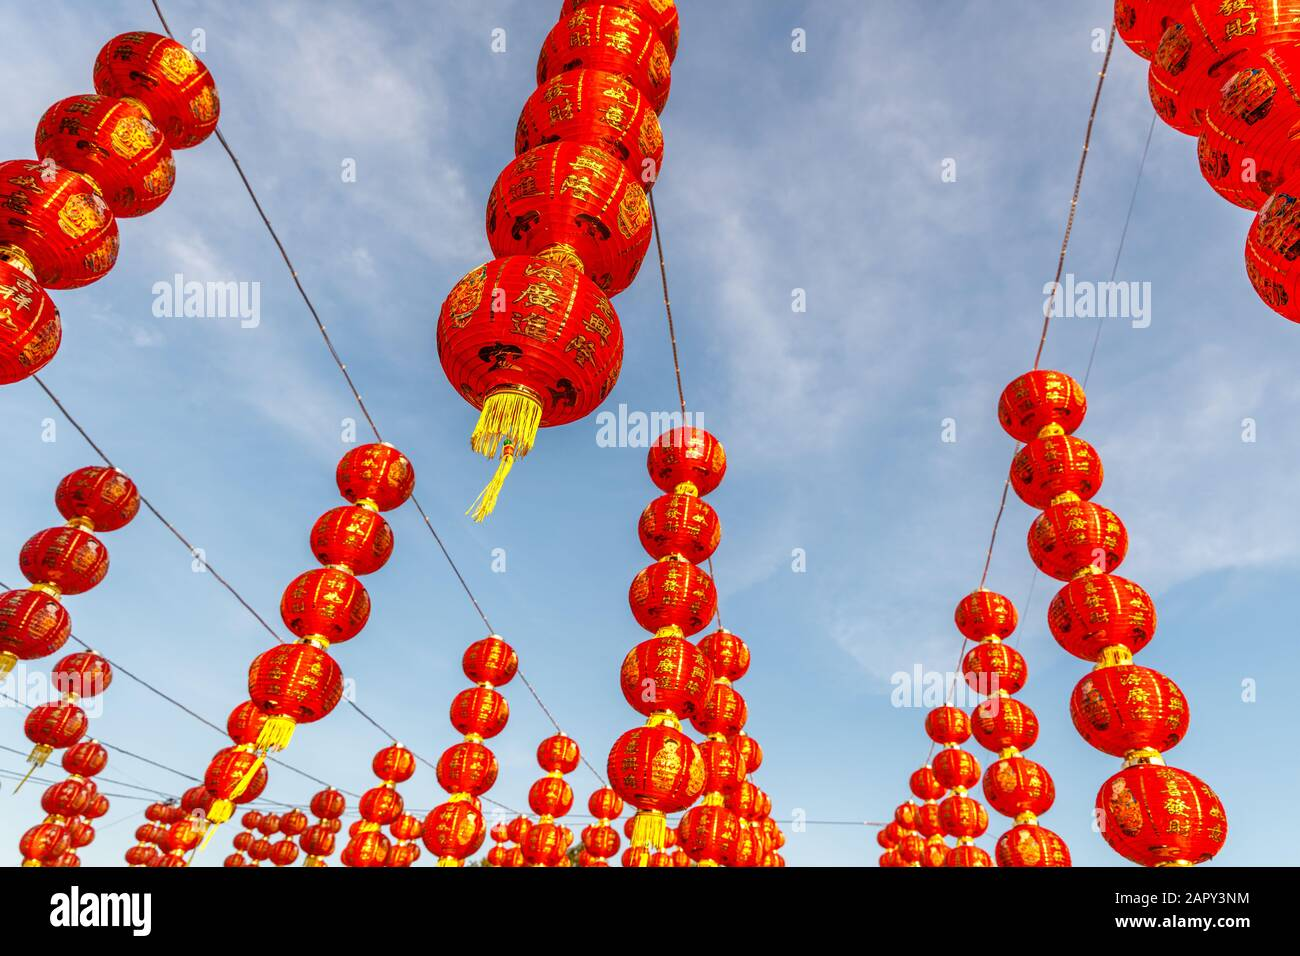 Red lanterns for celebration of Chinese Lunar New Year in Vihara Satya Dharma, Chinese Buddhist temple in Benoa, Bali, Indonesia. Stock Photo